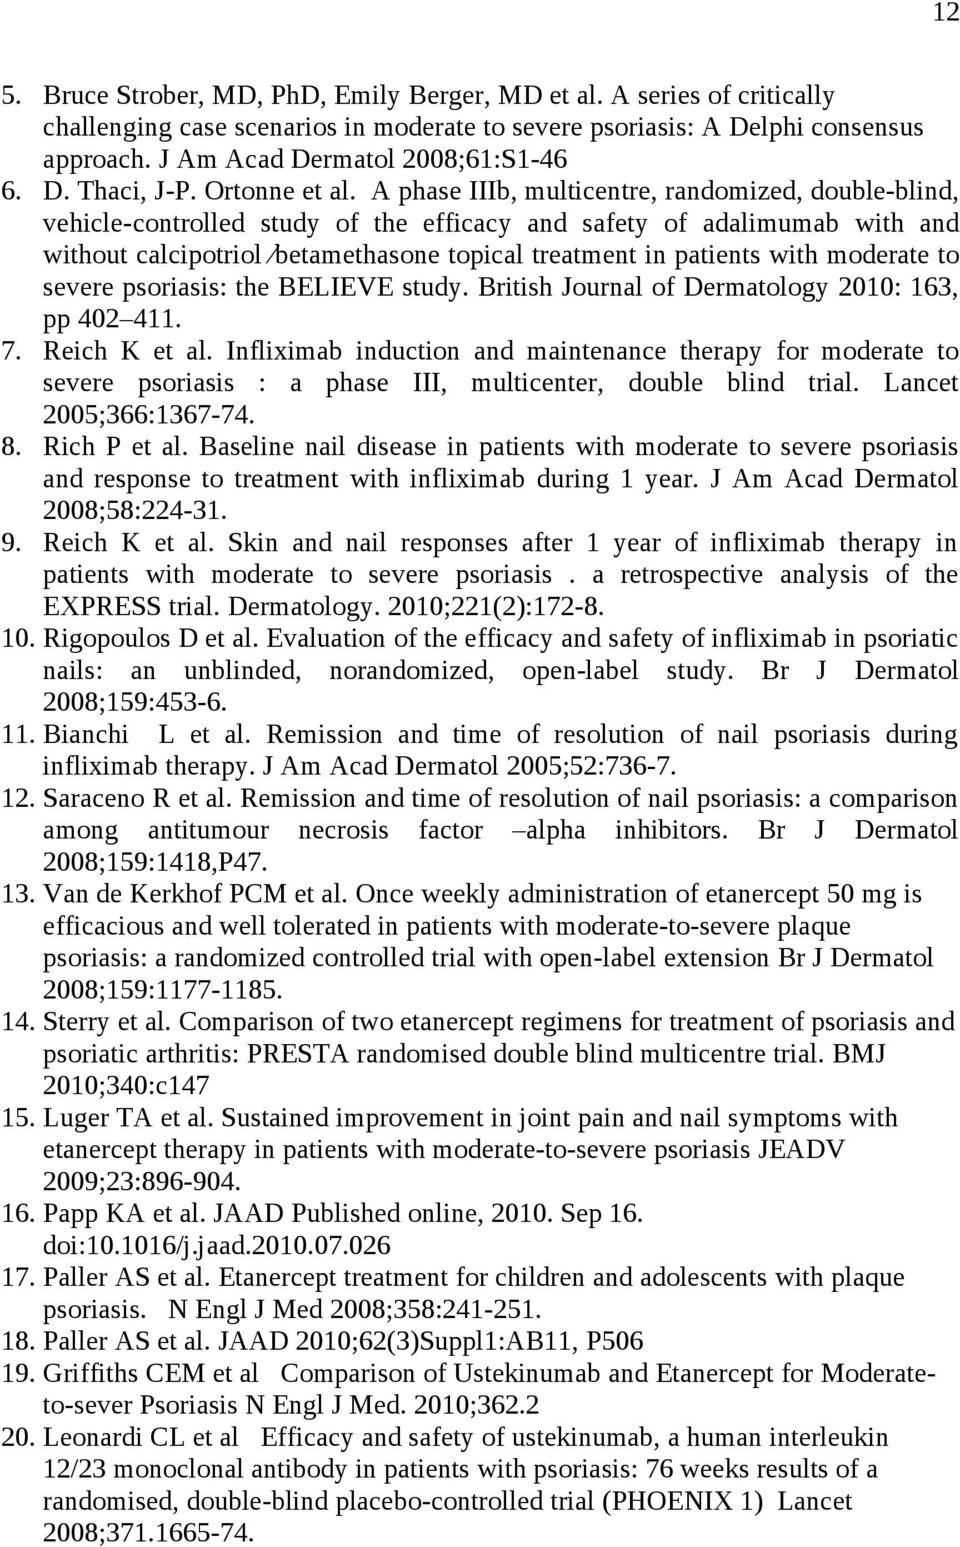 A phase IIIb, multicentre, randomized, double-blind, vehicle-controlled study of the efficacy and safety of adalimumab with and without calcipotriol betamethasone topical treatment in patients with